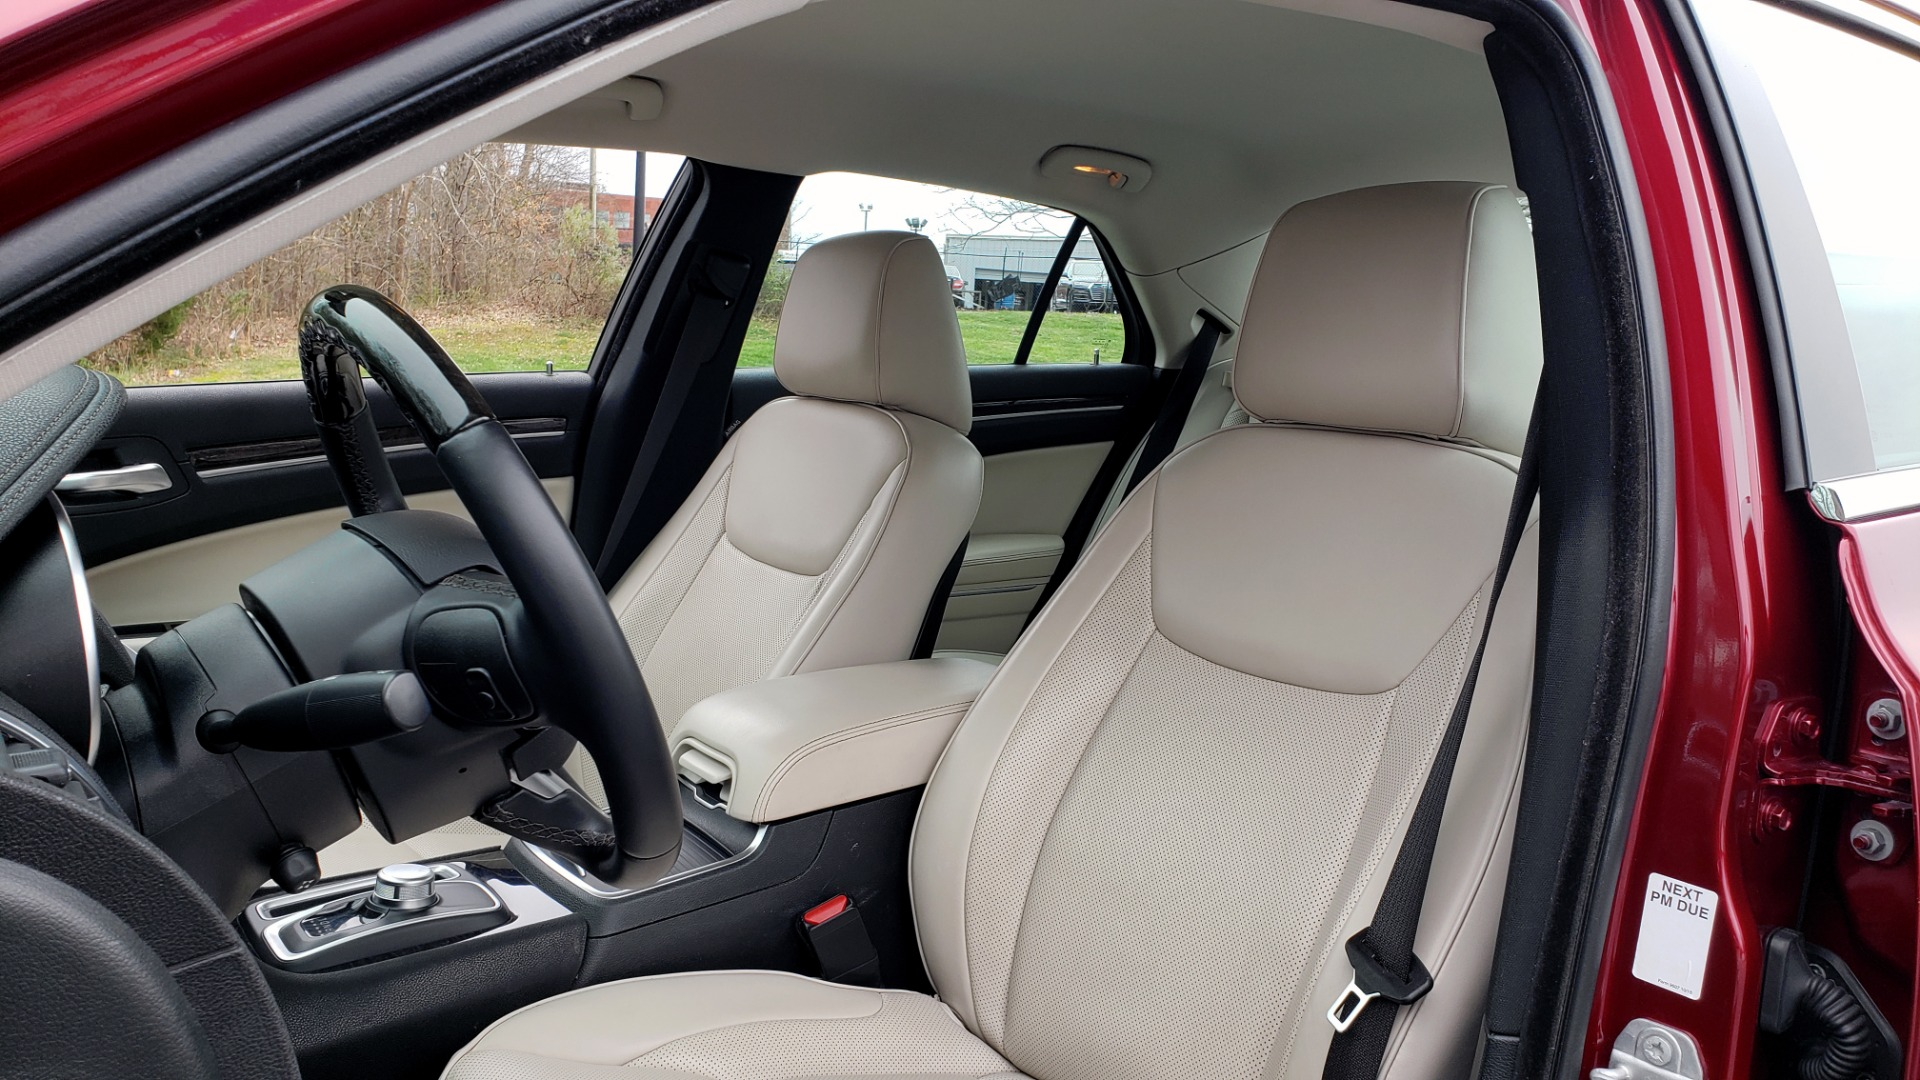 Used 2019 Chrysler 300 LIMITED / 3.6L V6 / 8-SPD AUTO / LEATHER / REARVIEW for sale Sold at Formula Imports in Charlotte NC 28227 40